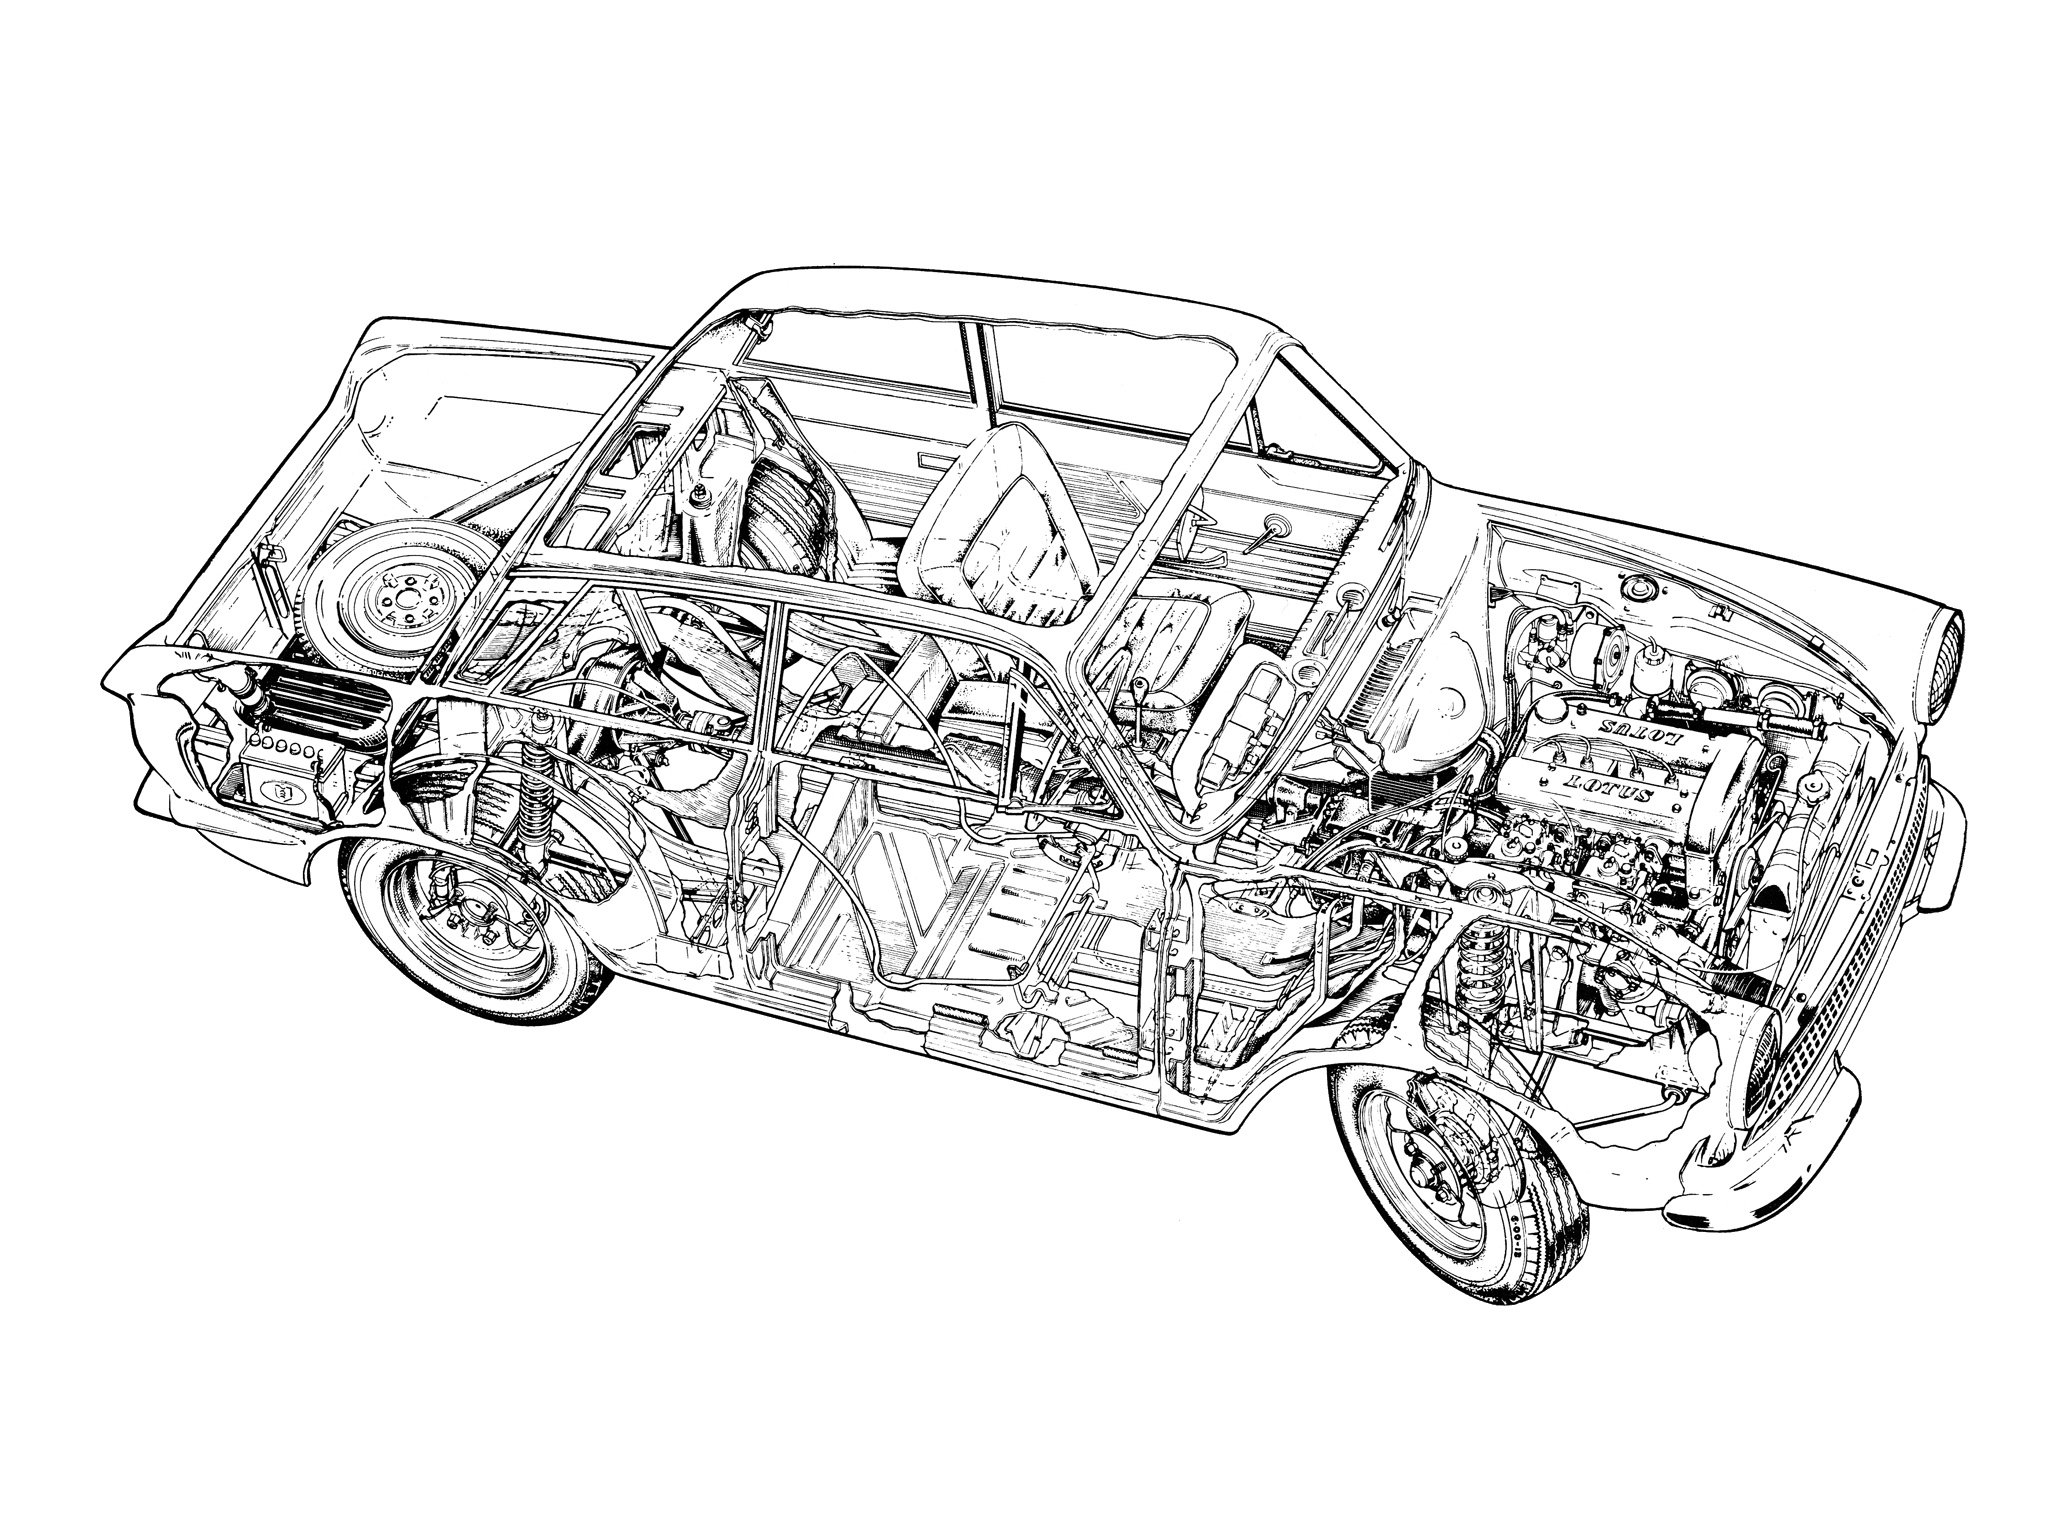 Ford Cortina Engine Diagram Auto Electrical Wiring